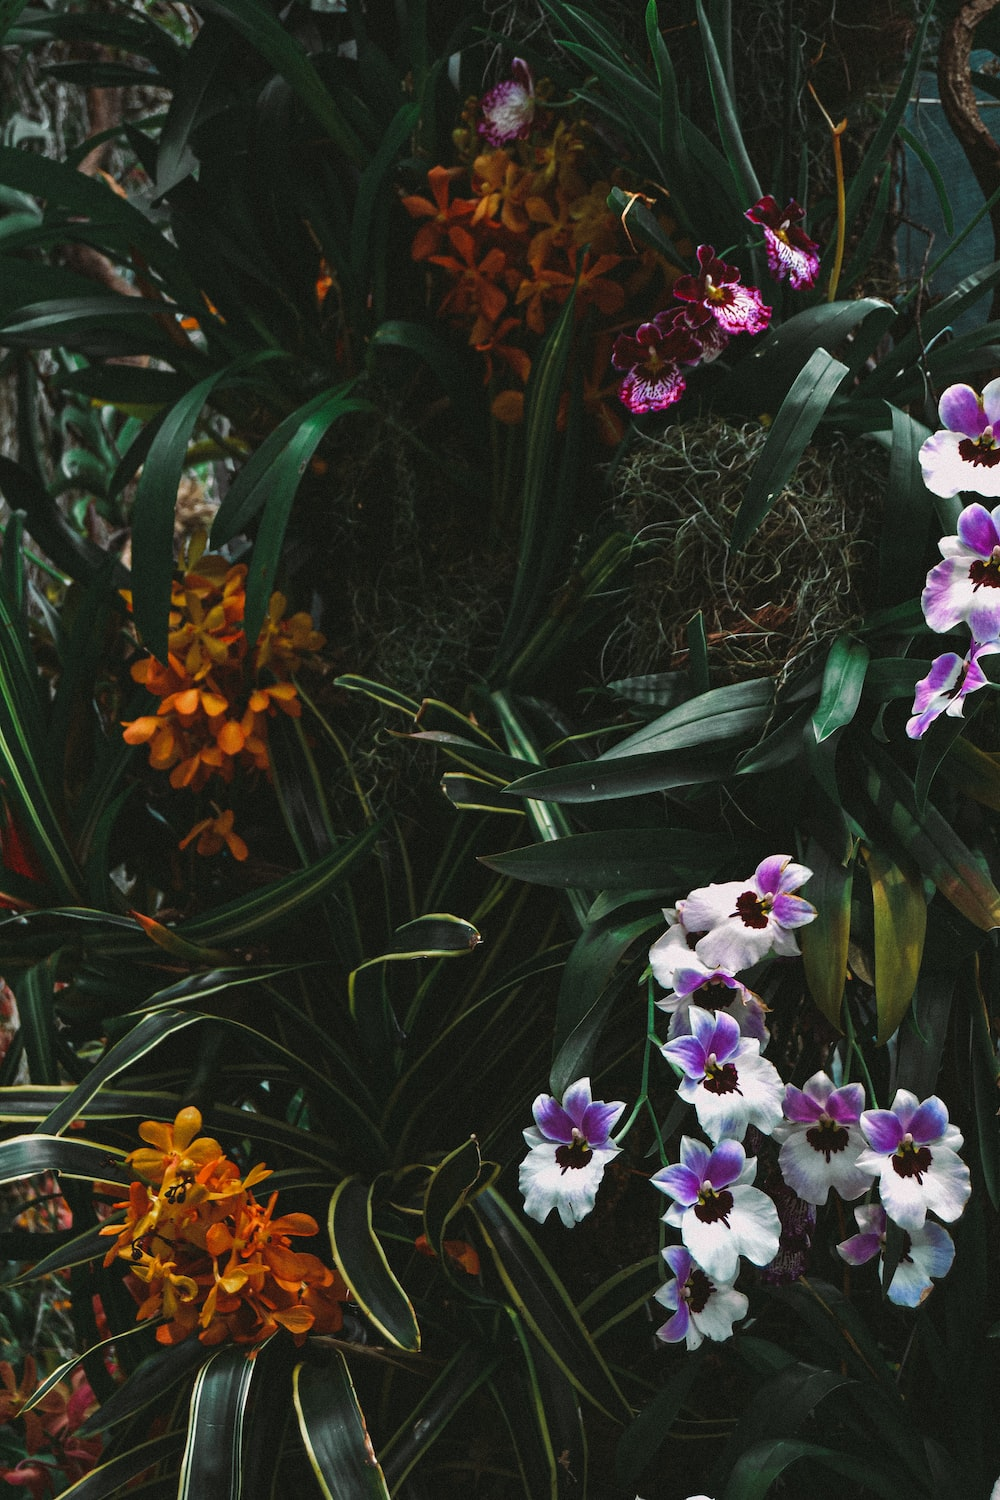 green, yellow, and purple flowers